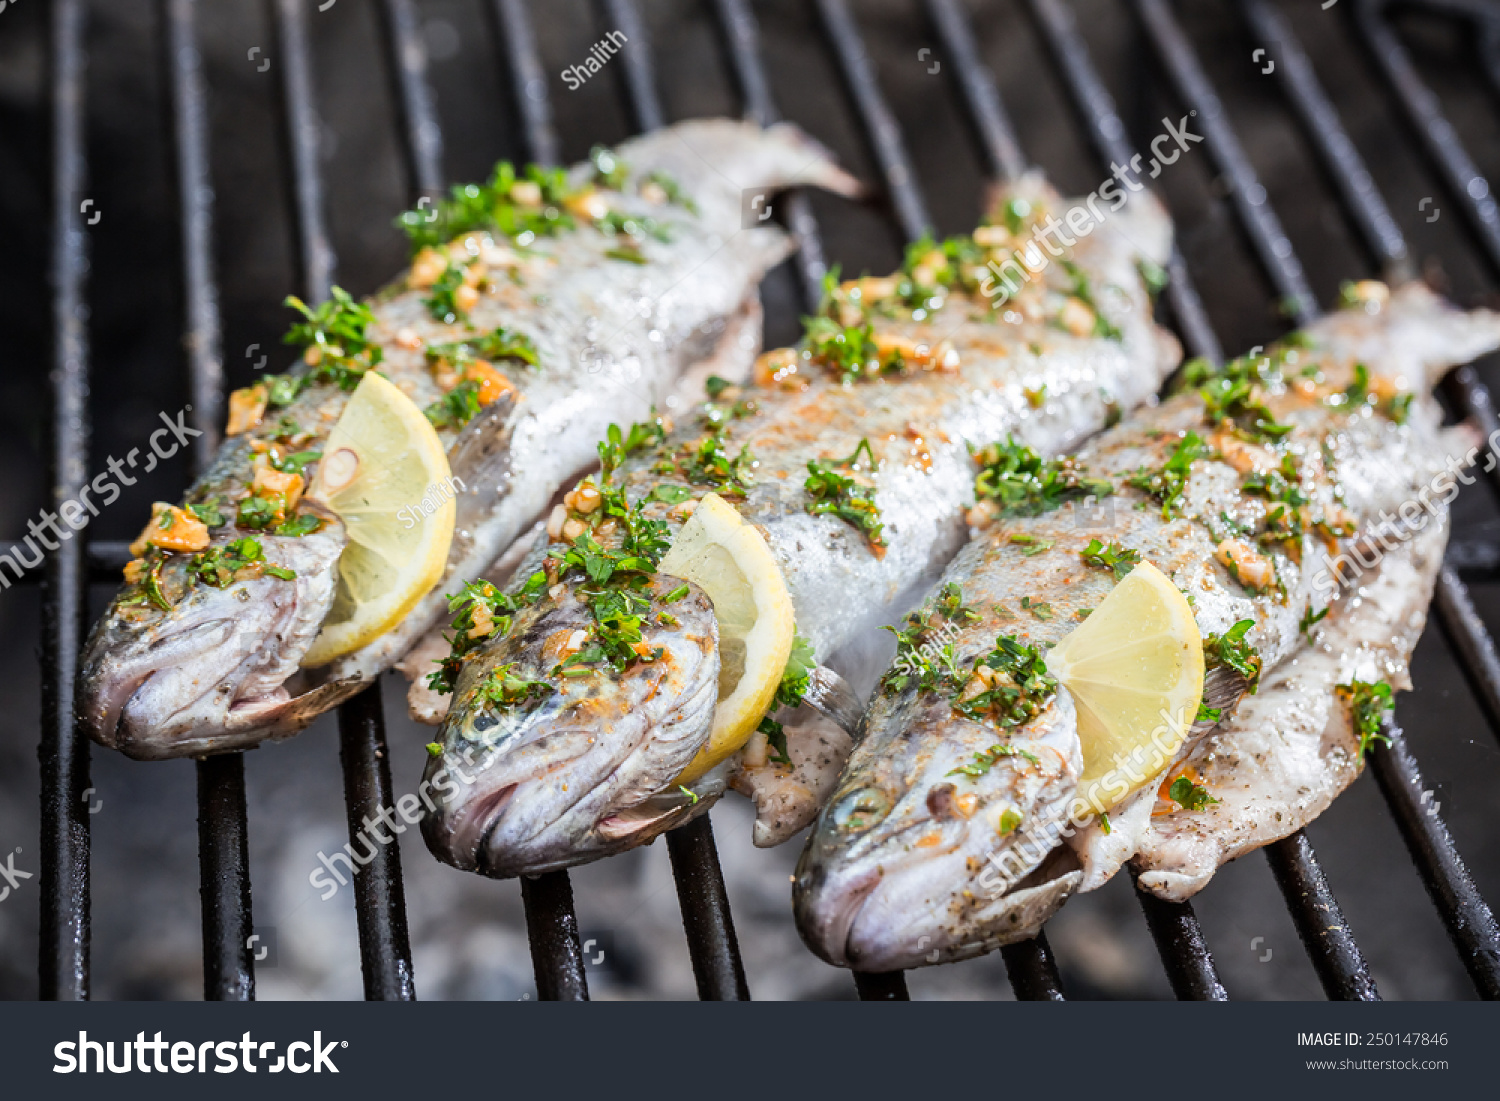 Grilled fish with lemon and spices stock photo 250147846 for Grilled fish seasoning